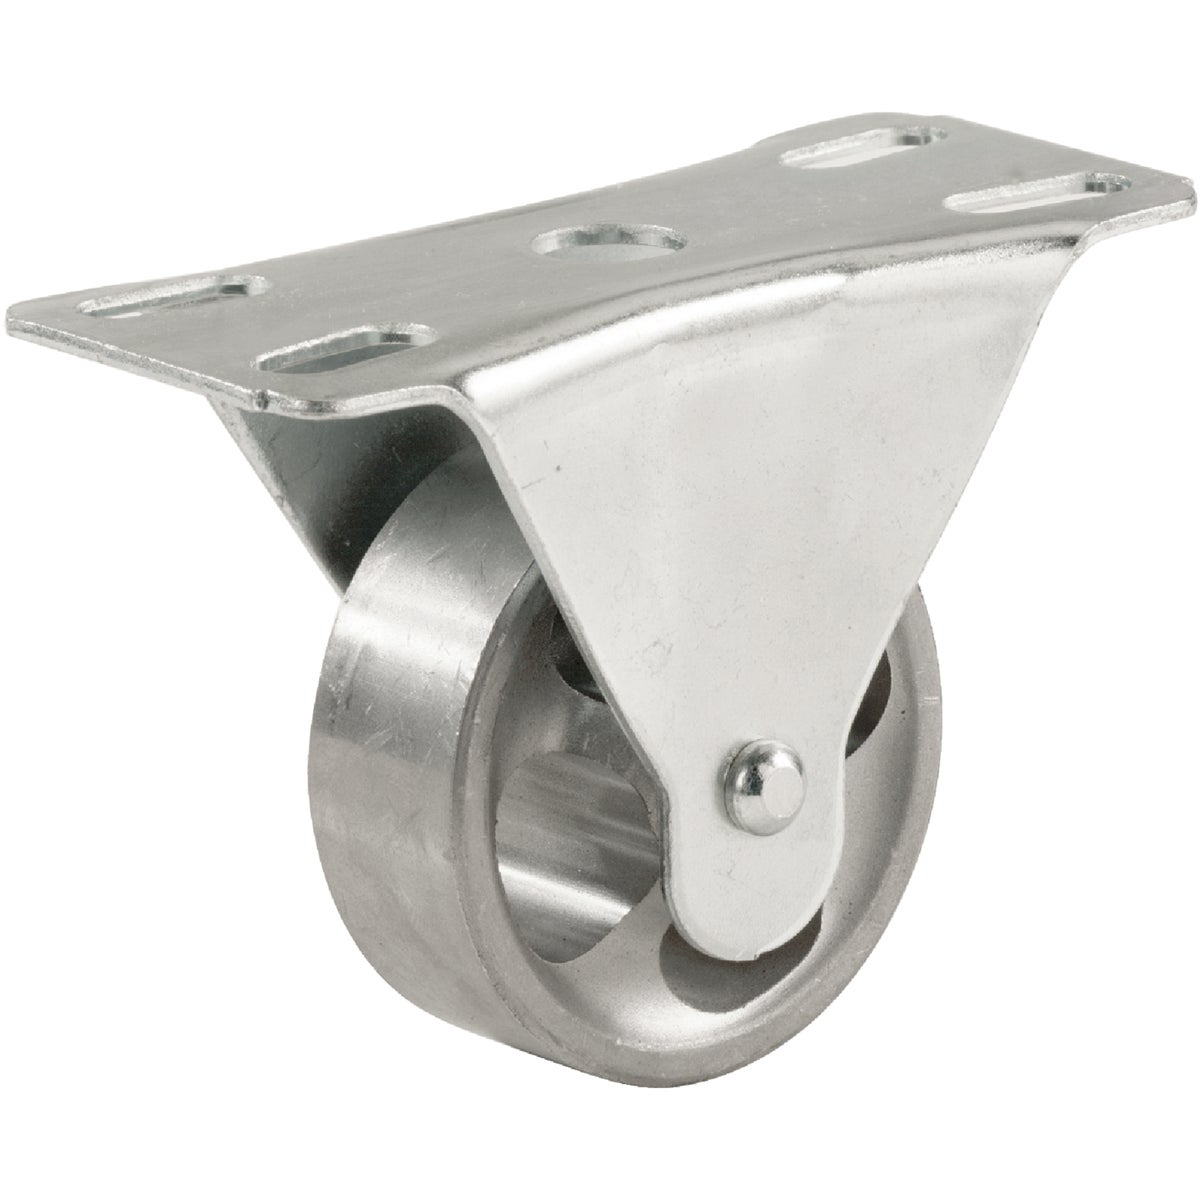 "3"" RIGID IRON CASTER - 9781 by Shepherd Hardware"